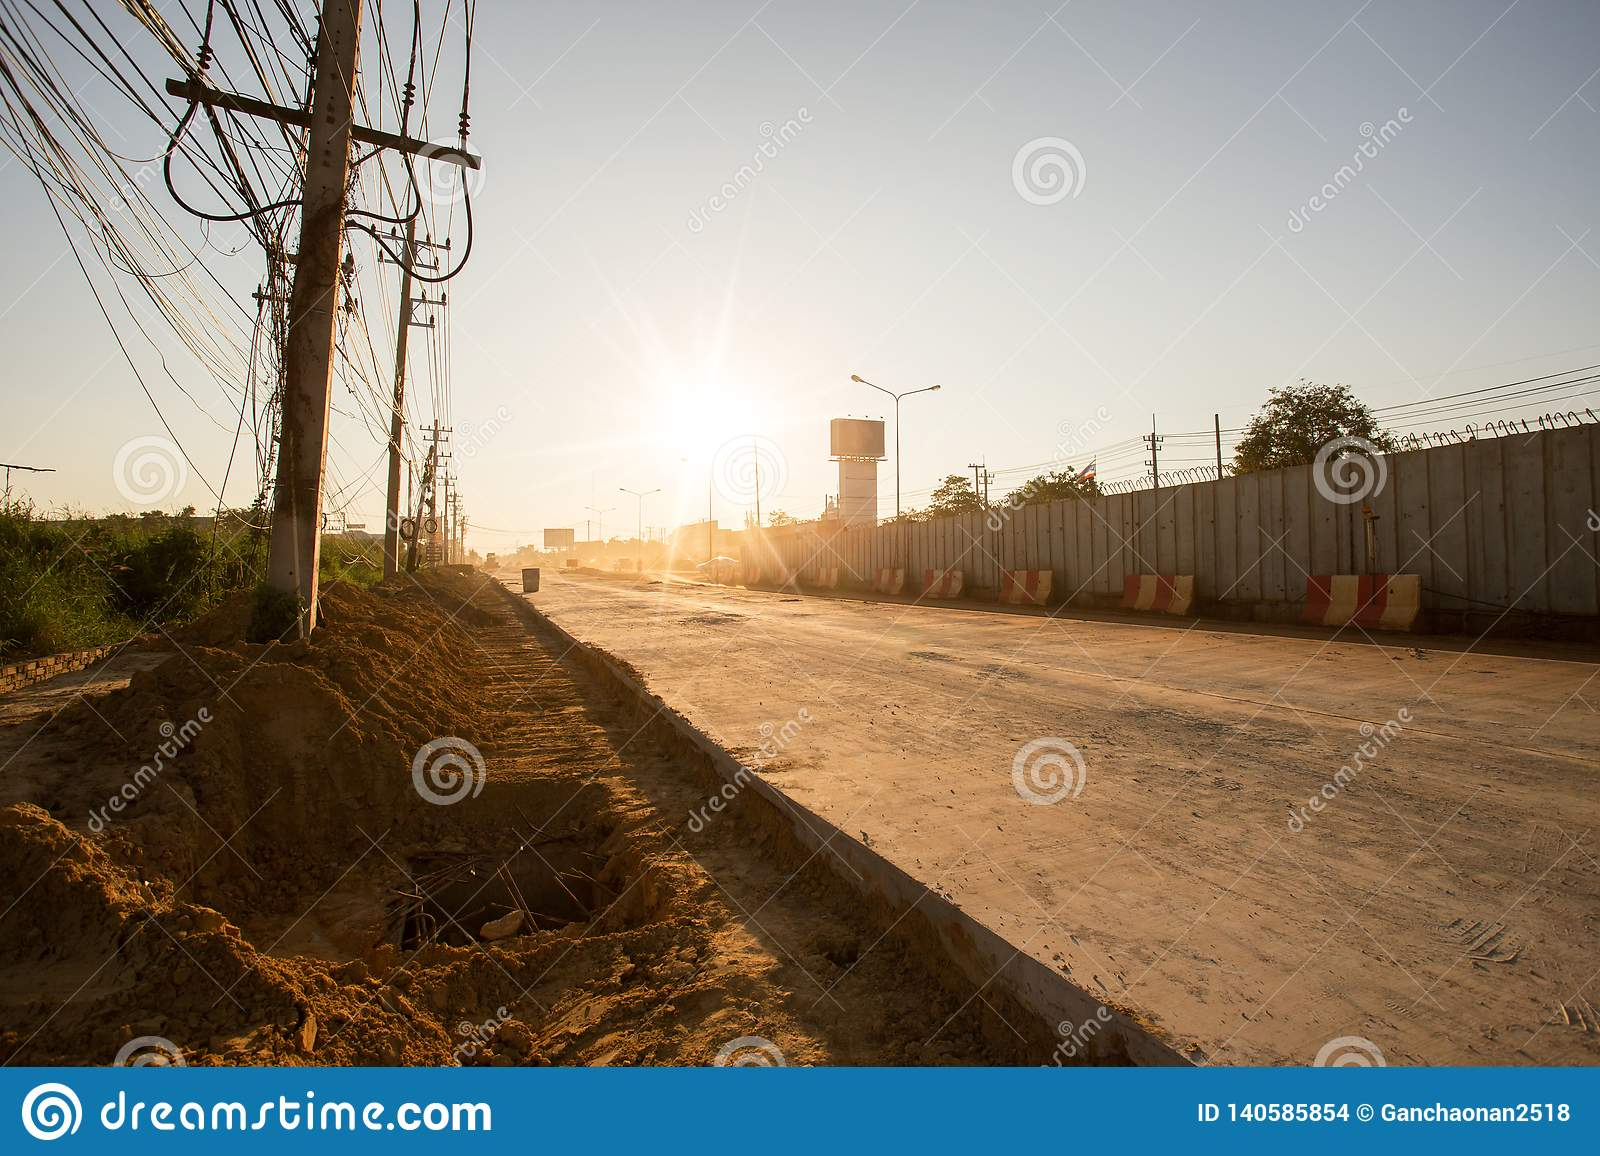 Road currently under construction at to increase traffic